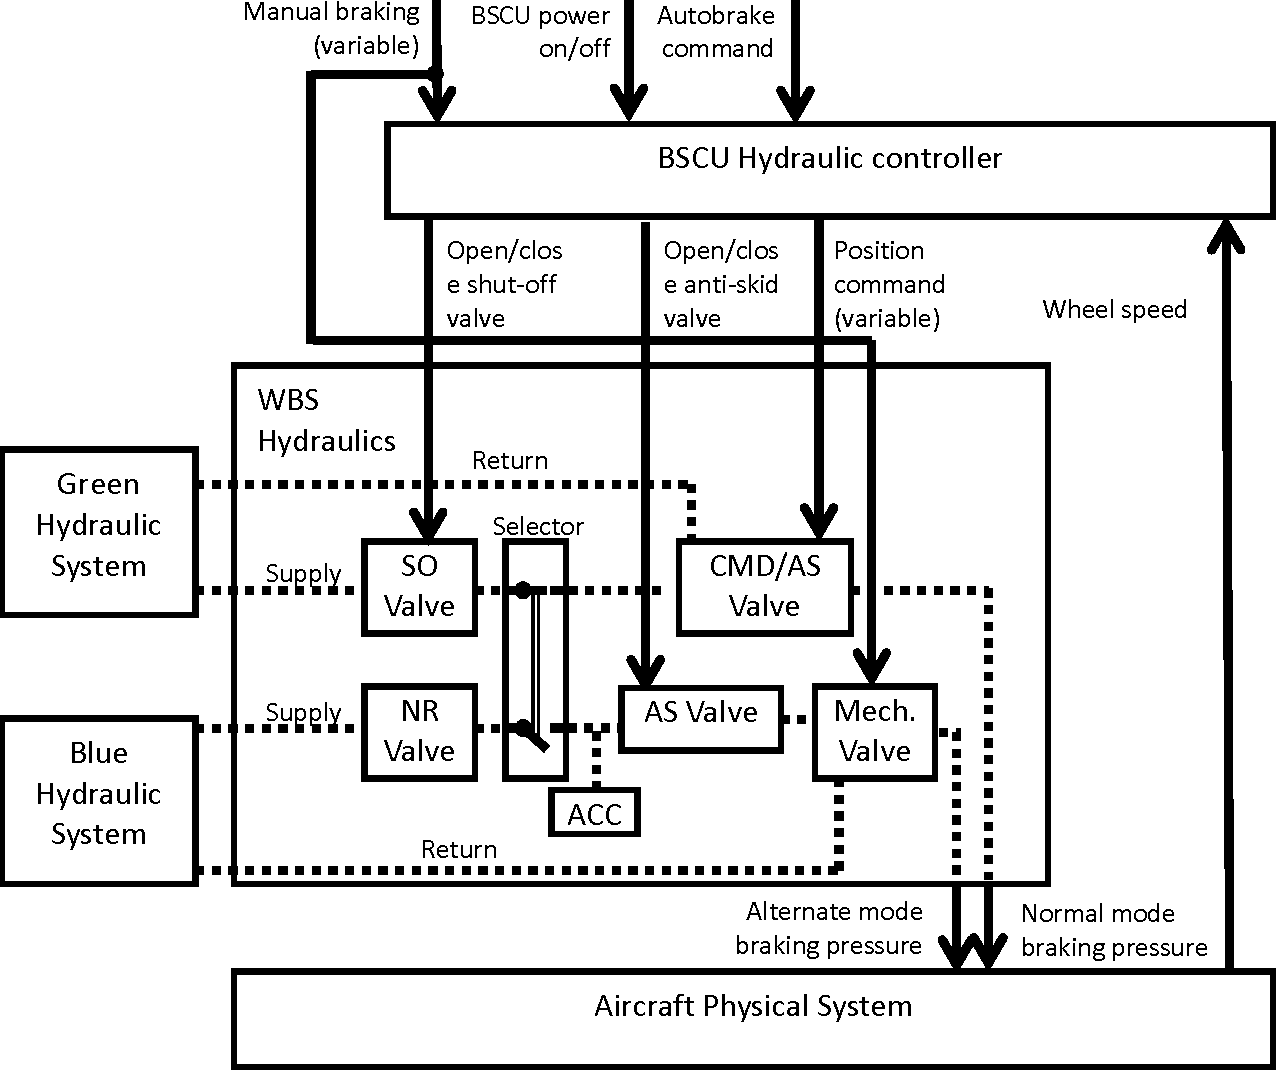 A Comparison Of Stpa And The Arp 4761 Safety Assessment Process 1 Aircraft Hydraulic System Intelligent Diagrams Like Figure 512